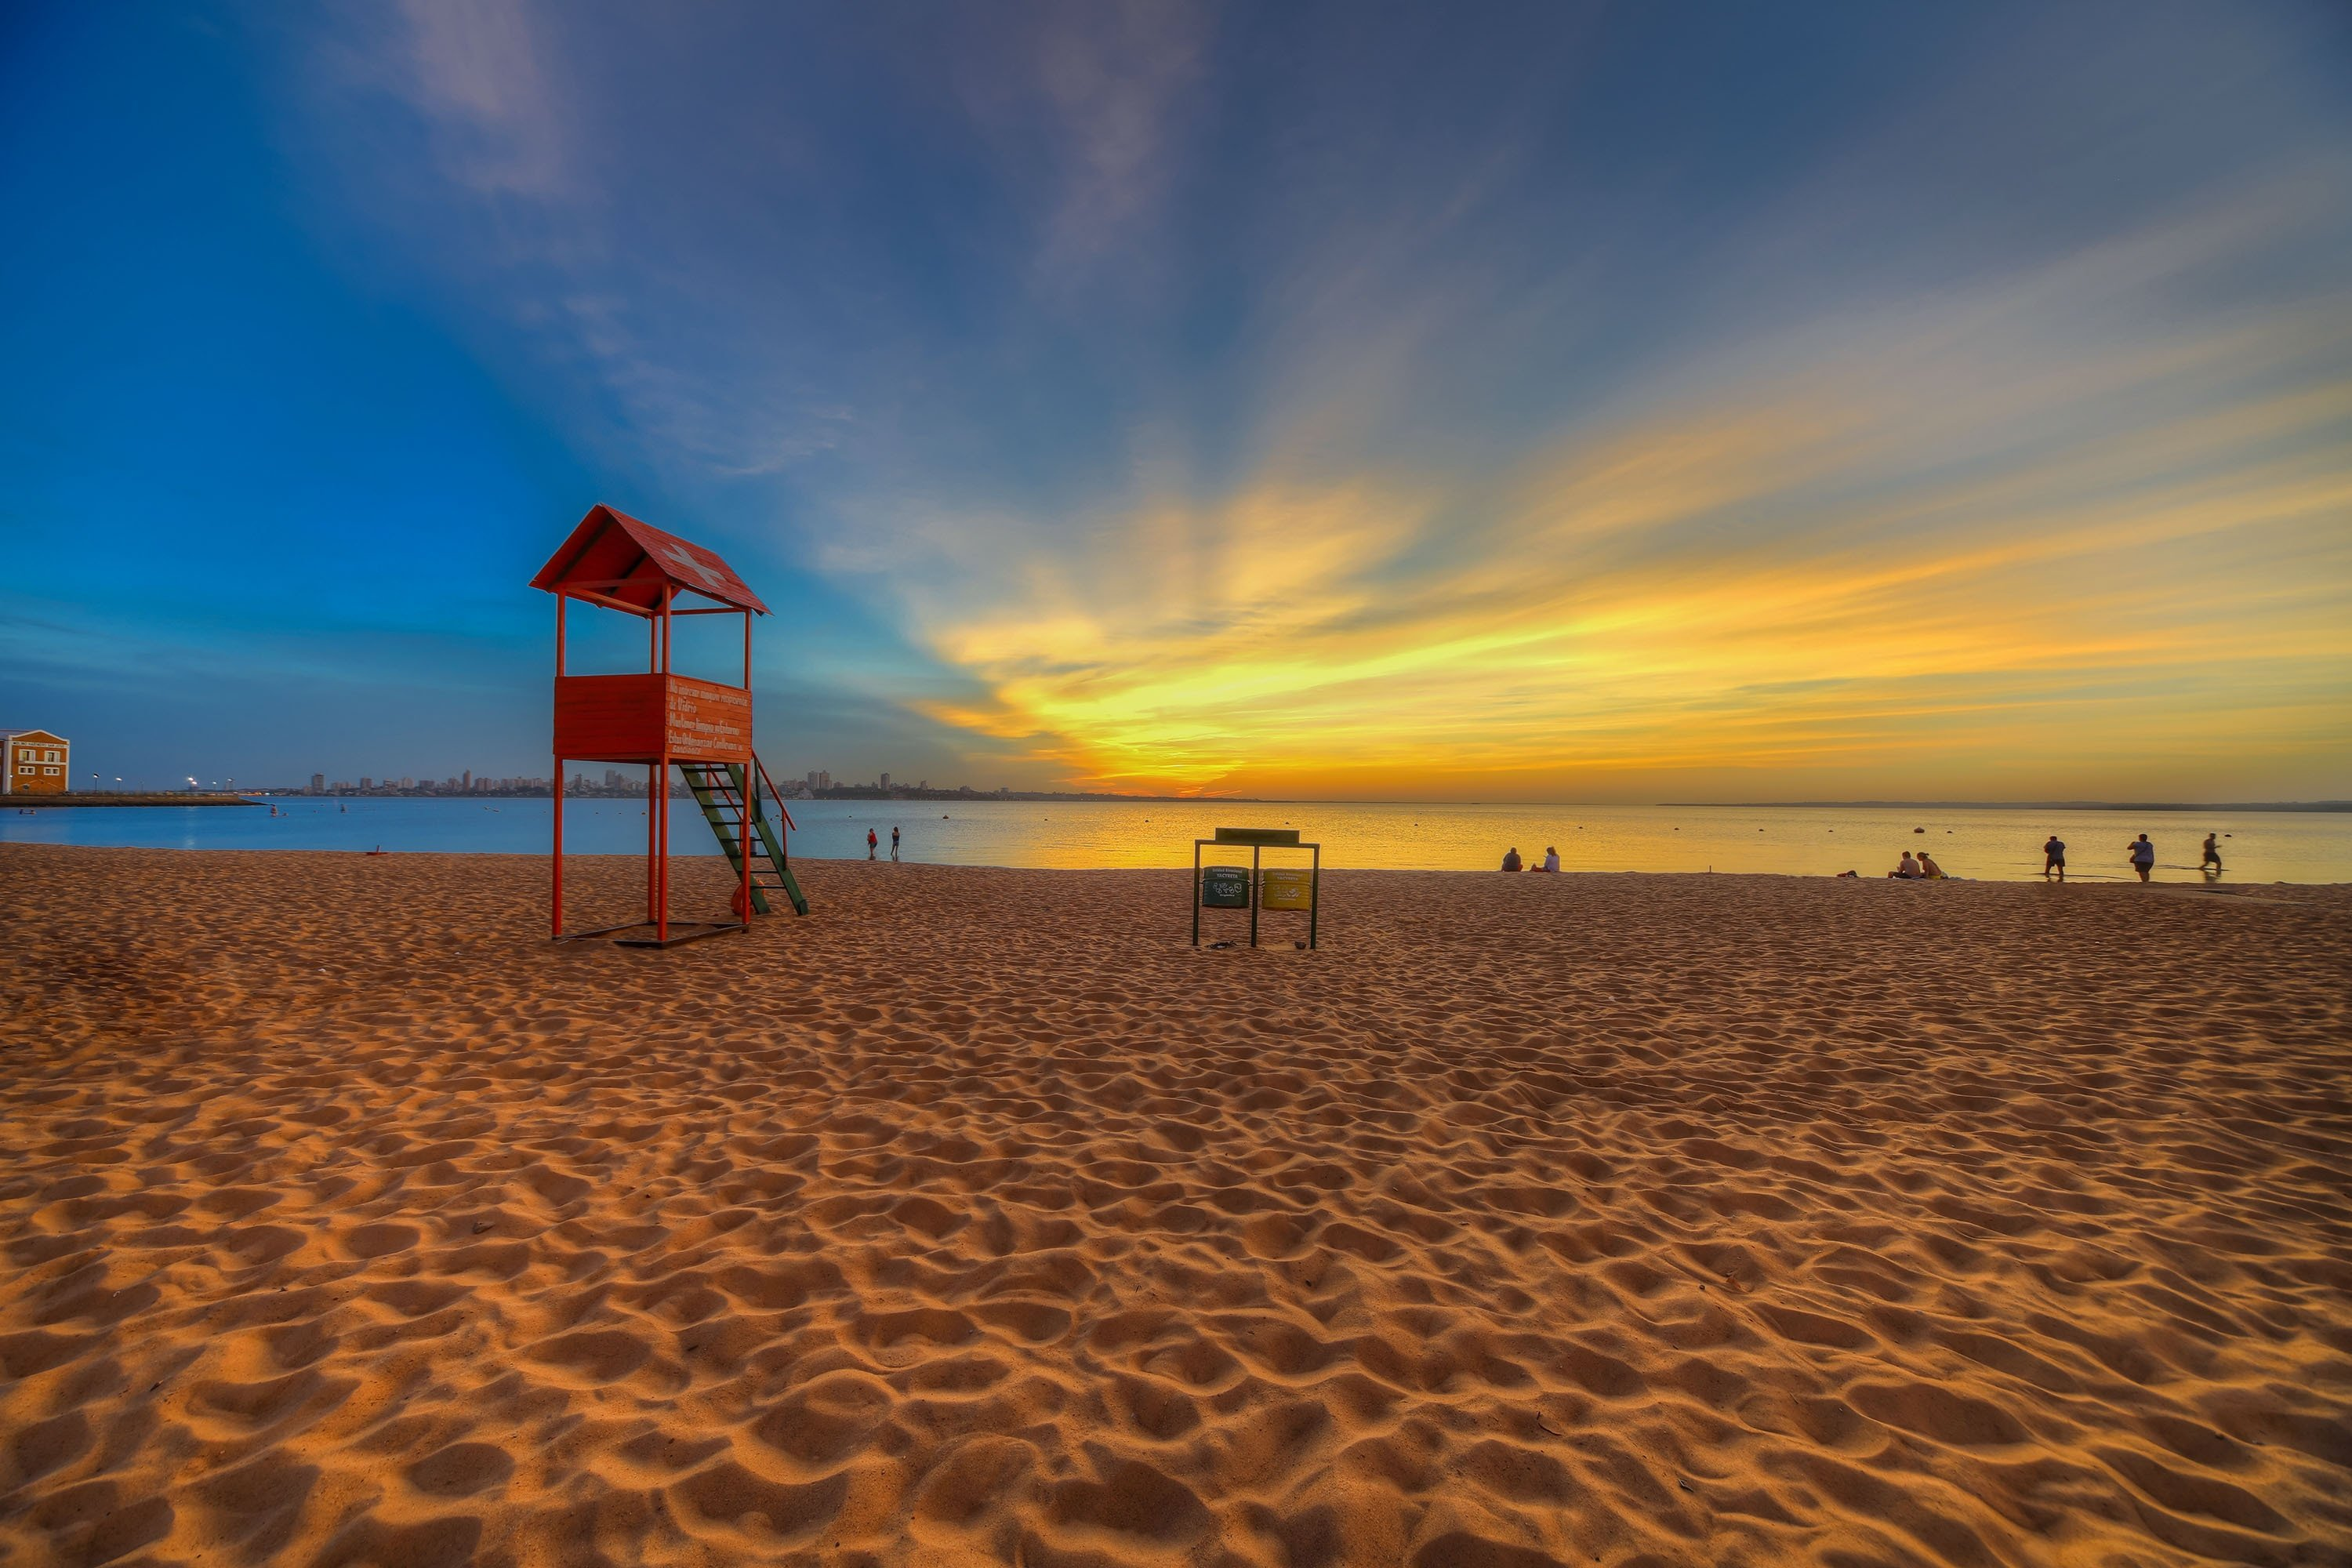 The San Jose beach in Encarnacion in Paraguay on the Parana River at the blue hour in Encarnacion, Paraguay, Nov. 10, 2018. (Shutterstock Photo)